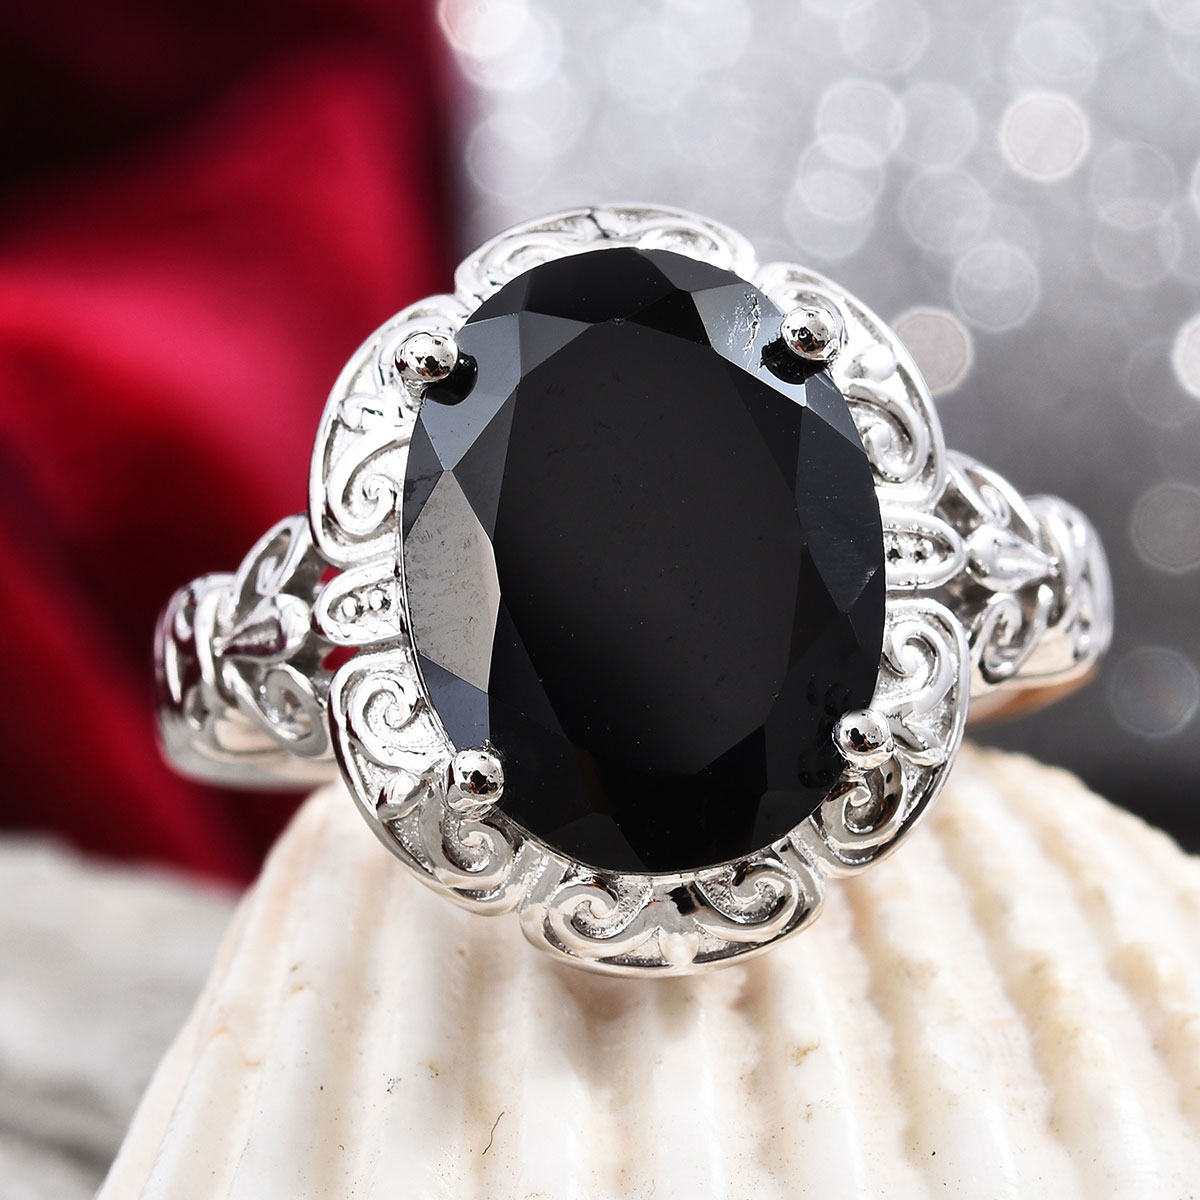 Shop LC Delivering Joy Stainless Steel Oval Black Spinel Statement Ring for Women Jewelry Gift Size 8 Cttw 2.7